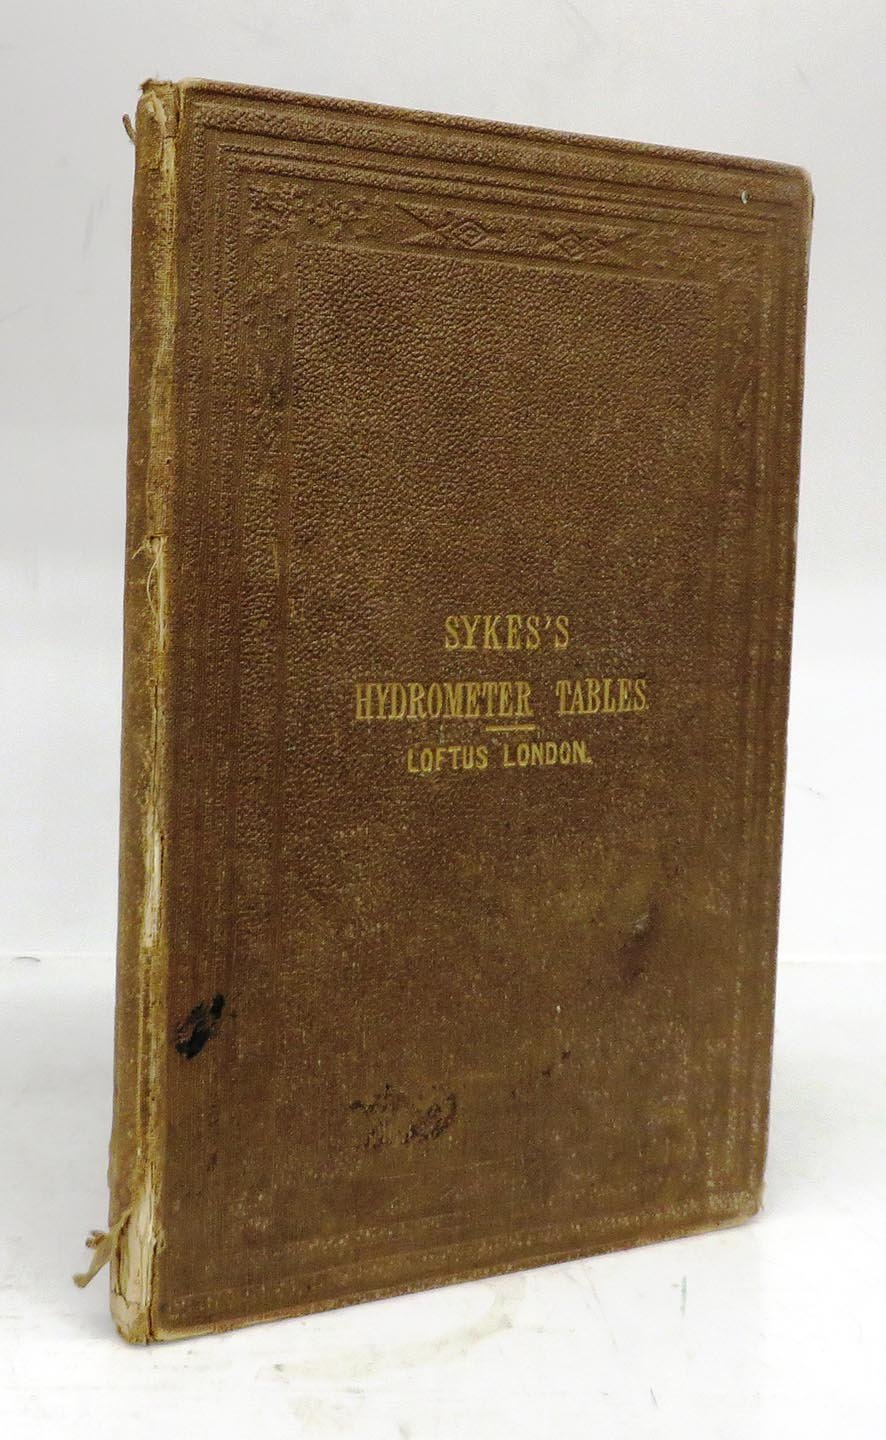 Tables of the Concentrated Strength of Spirits by Sykes's Hydrometer; As Used by the Officers of the Excise Branch of the Inland Revenue